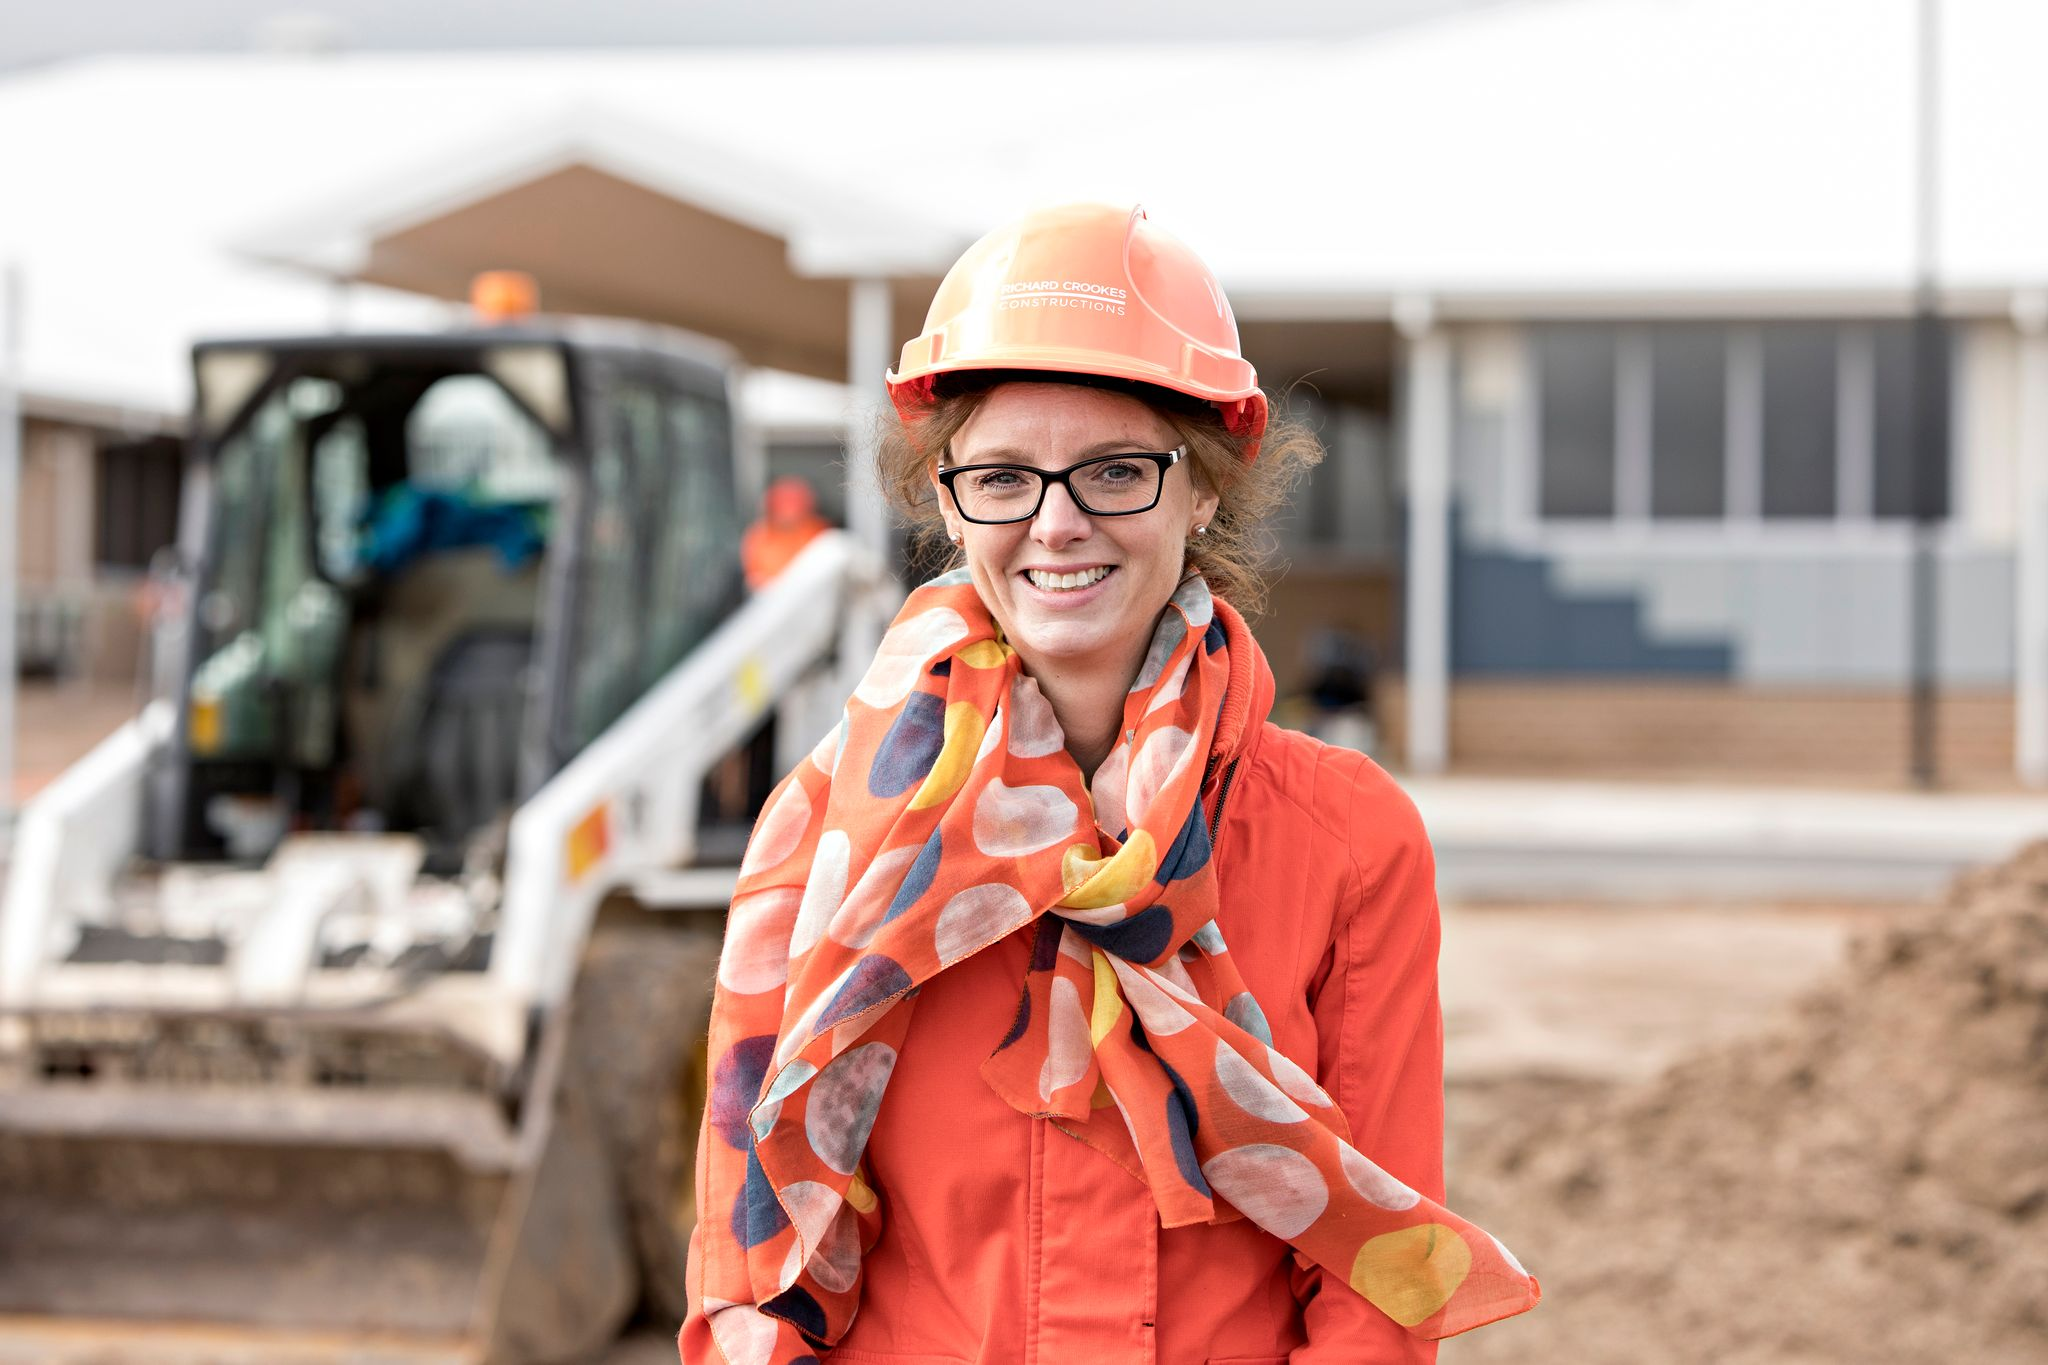 Steph Cooke stands at a construction site wearing a hard hat. She smiles at the camera while a bobcat can be seen operating in the background.